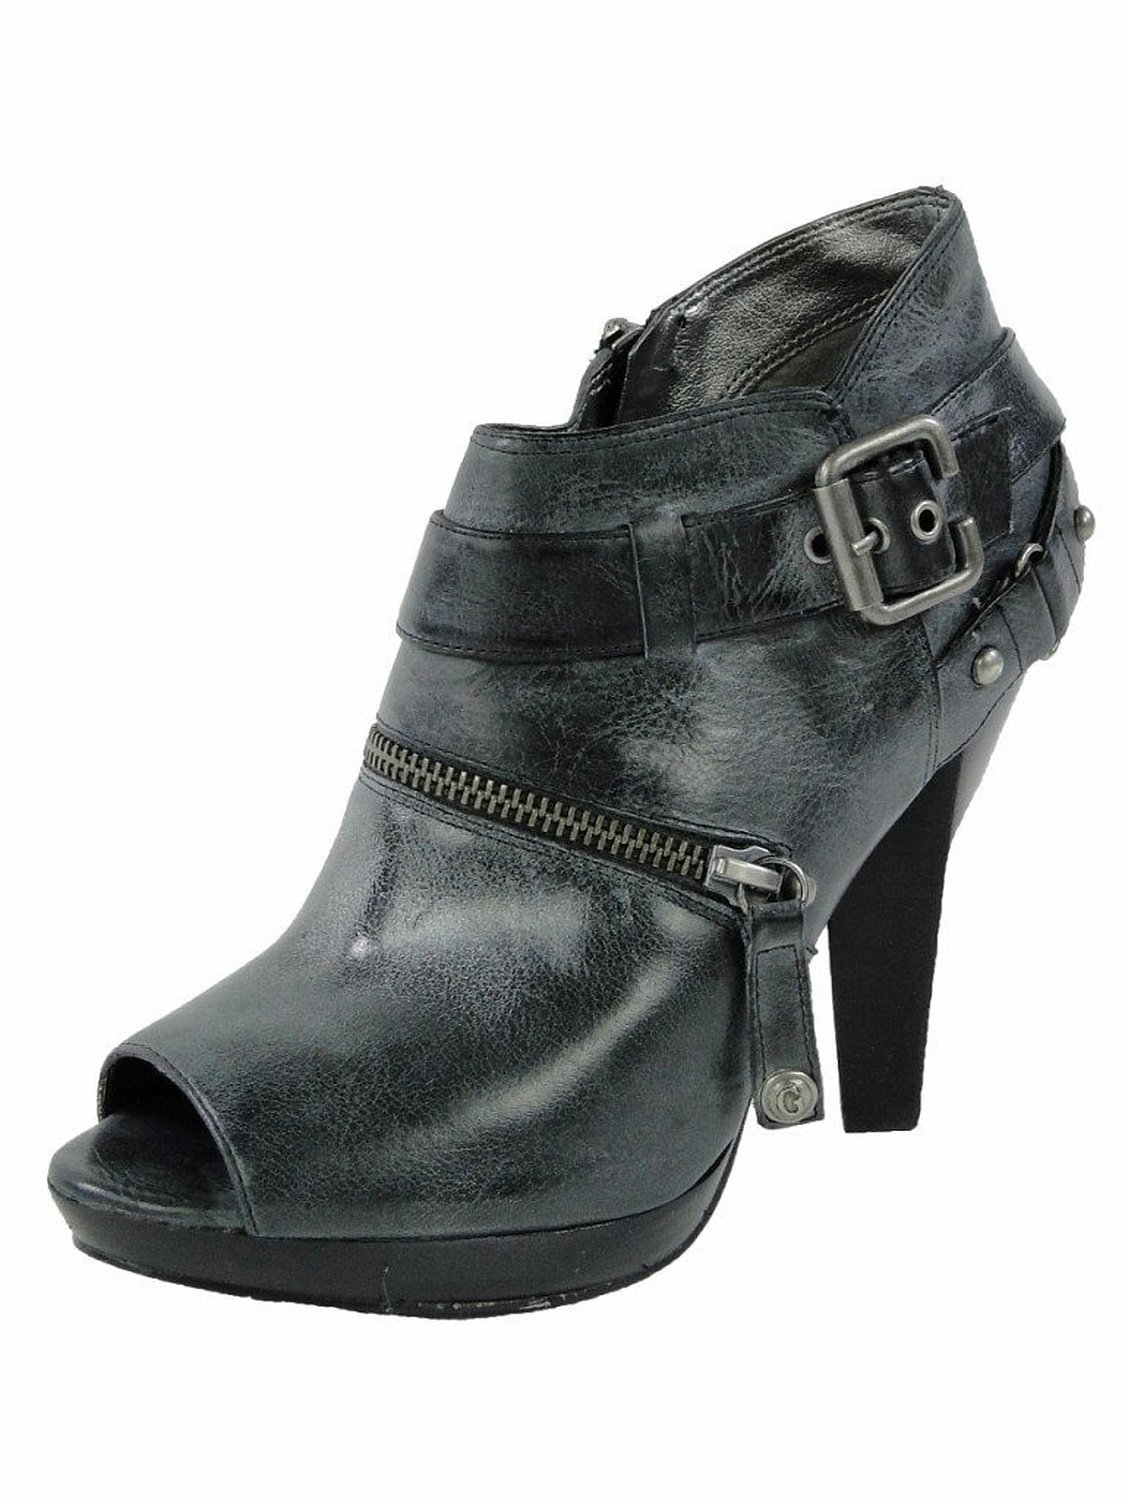 Size 9 M Guess Women's Oakridge Gray Leather Open Toe Heel Booties